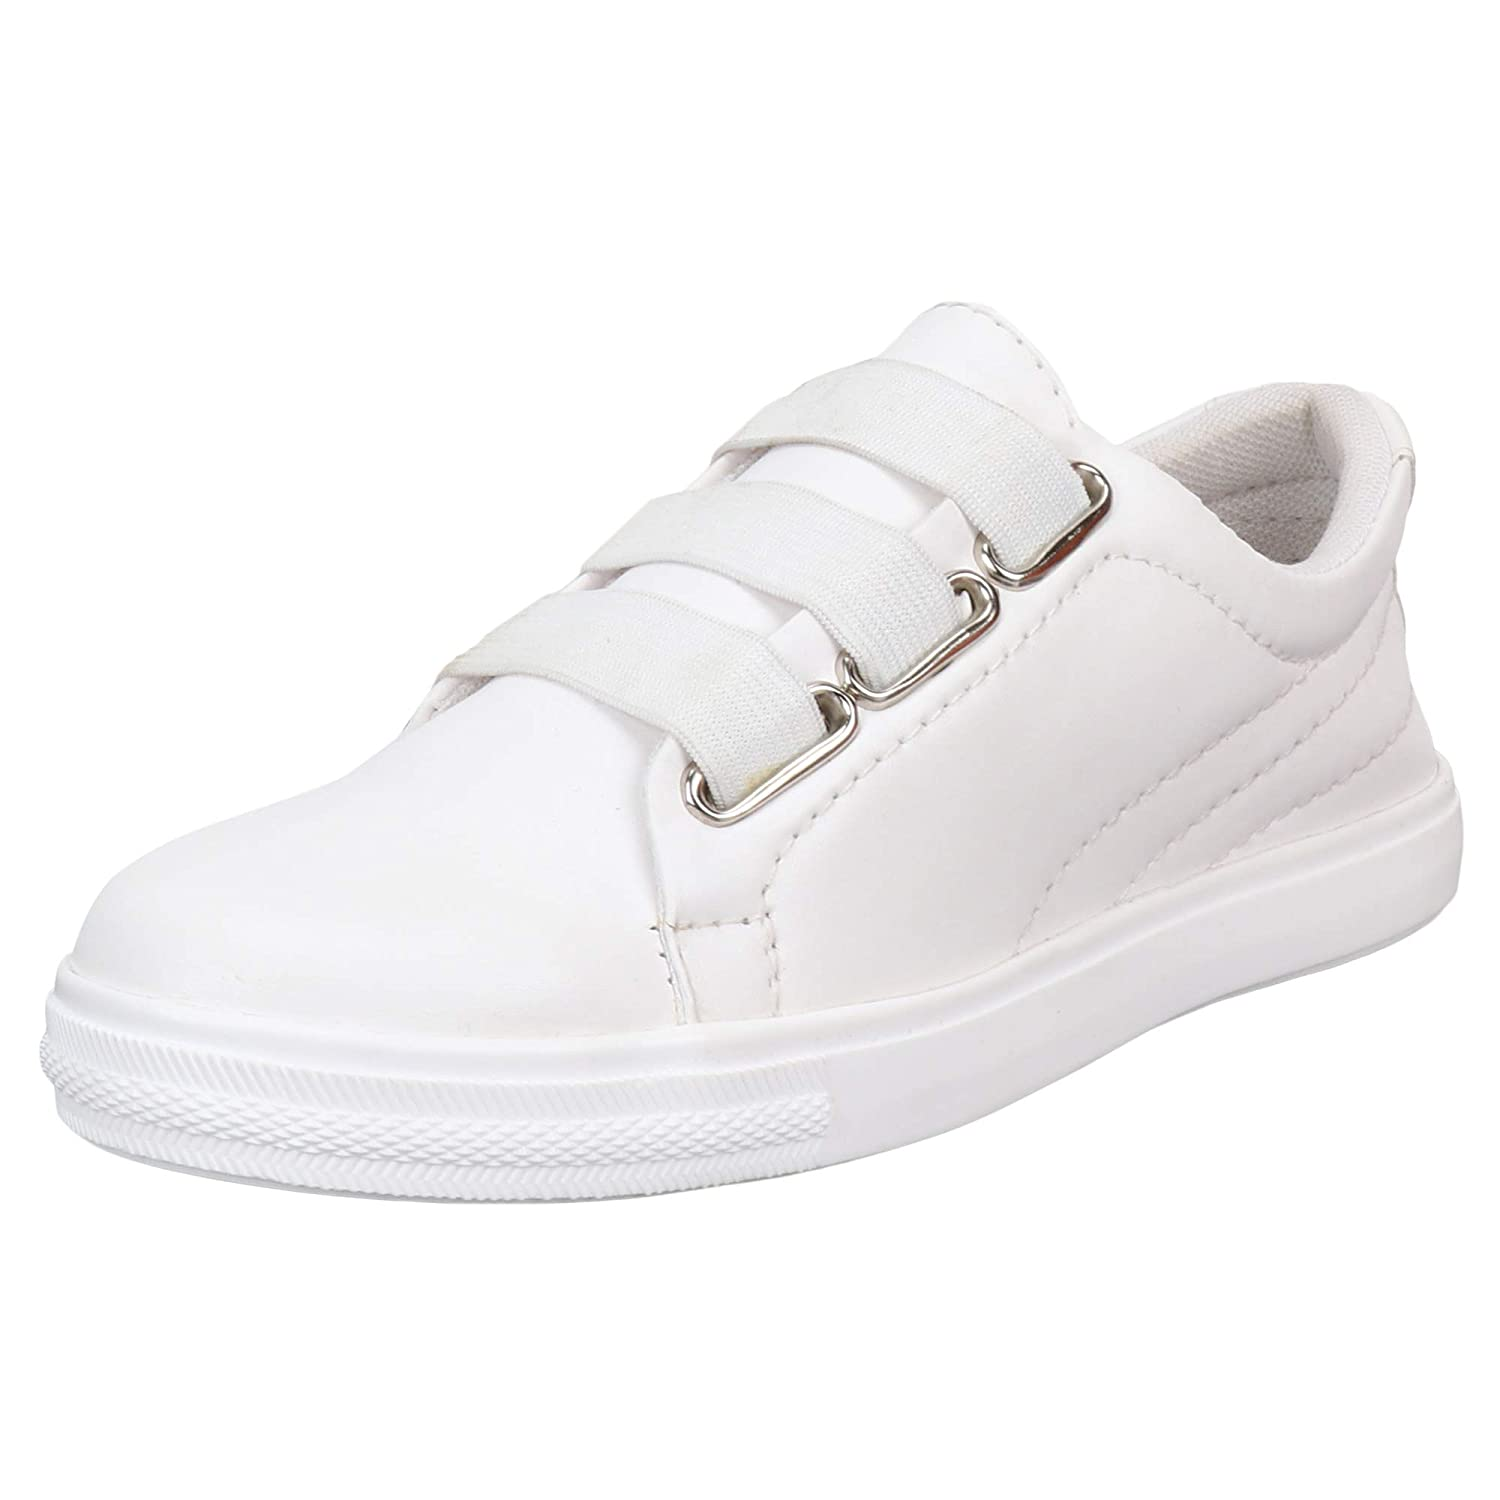 Casual Adjustable Lace-Up Sneakers Shoe